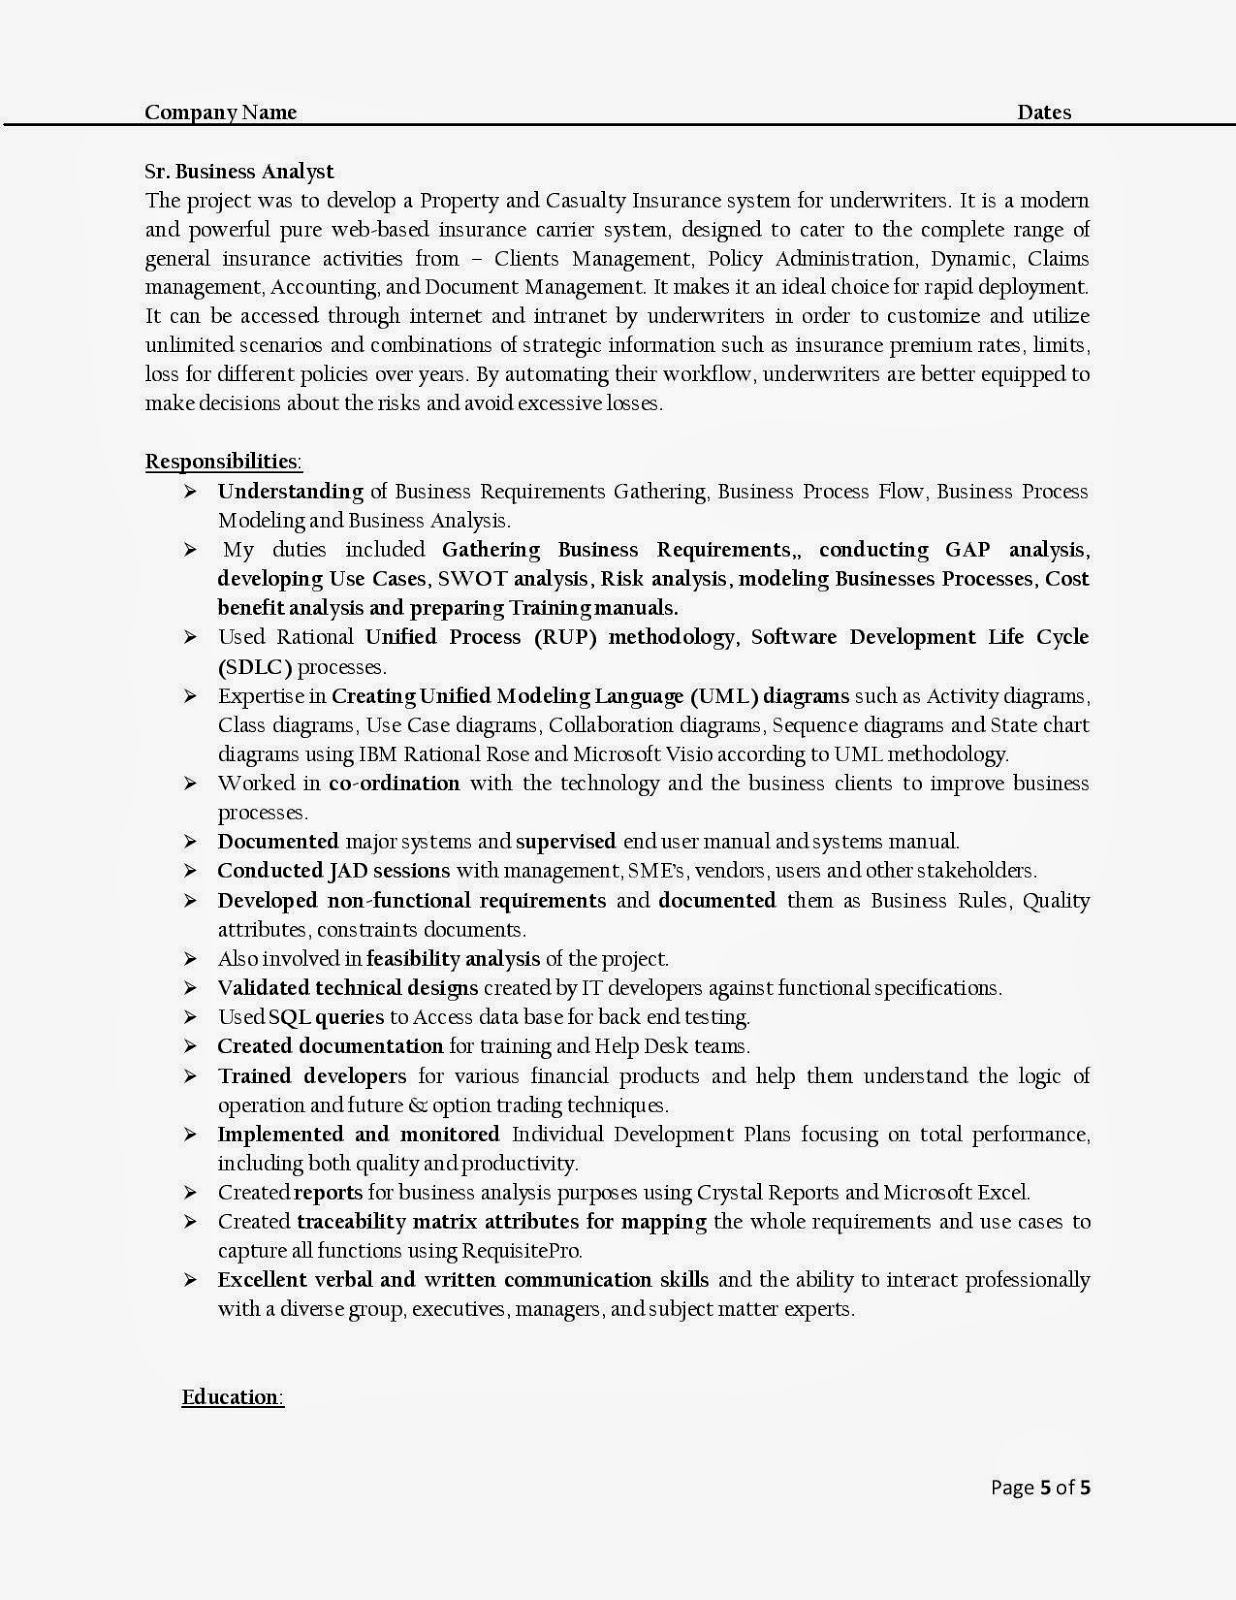 Sample_Business_Analyst_Resume-page-005.jpg